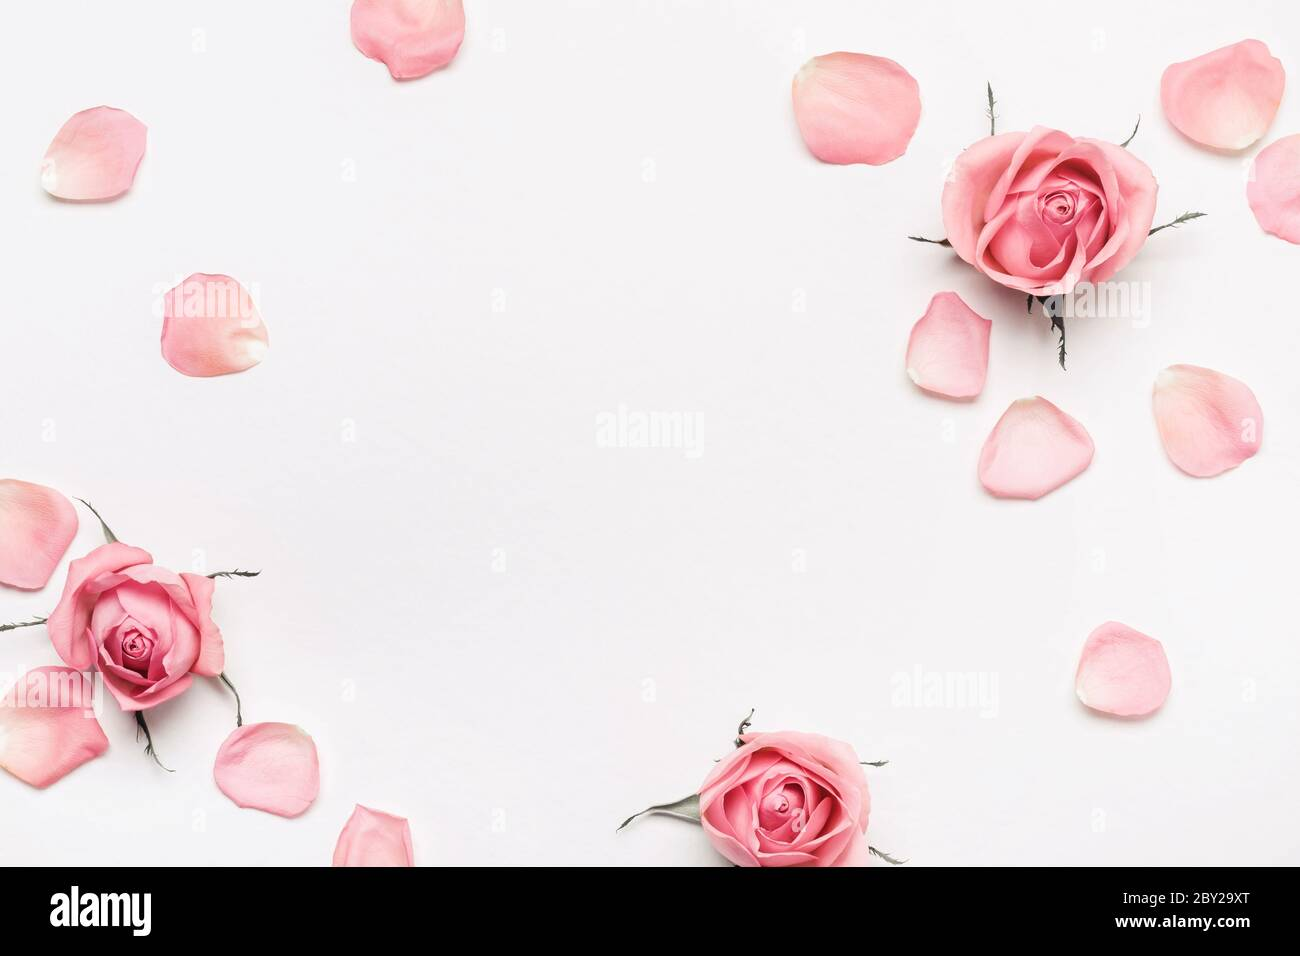 Pastel Pink Roses Frame On White Background Beautiful Flower Arrangement For Your Design Stock Photo Alamy